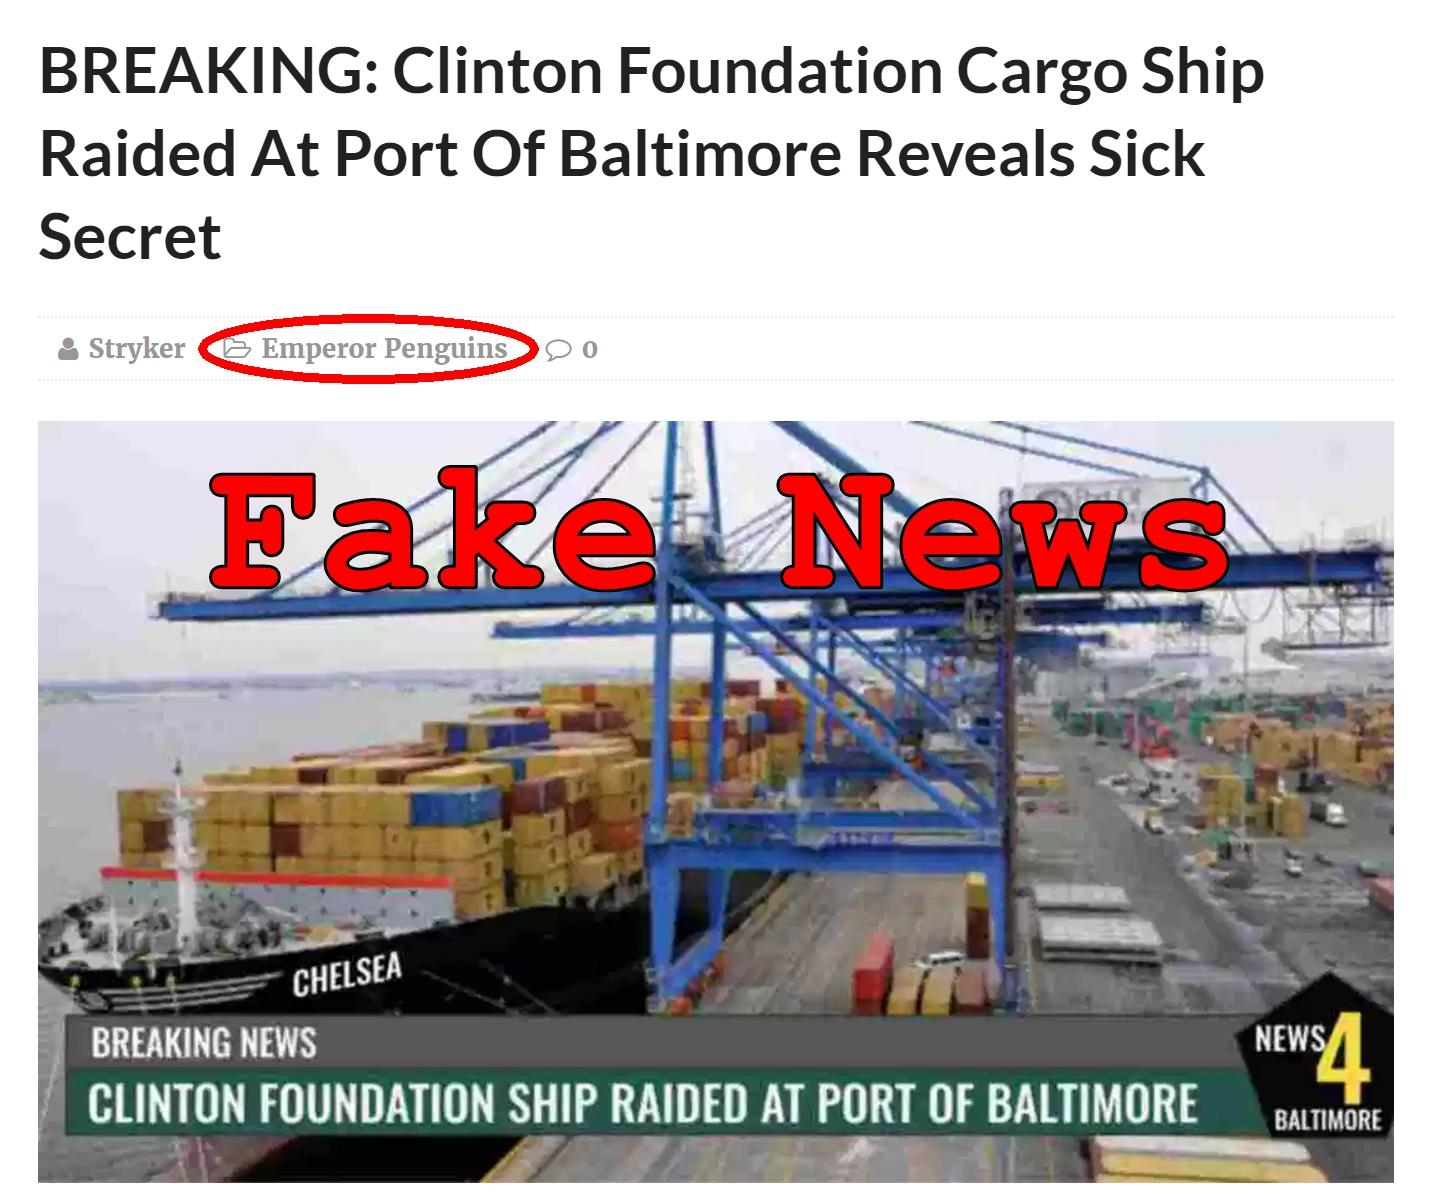 Fake News: NO Clinton Foundation Cargo Ship Raided At Port Of Baltimore